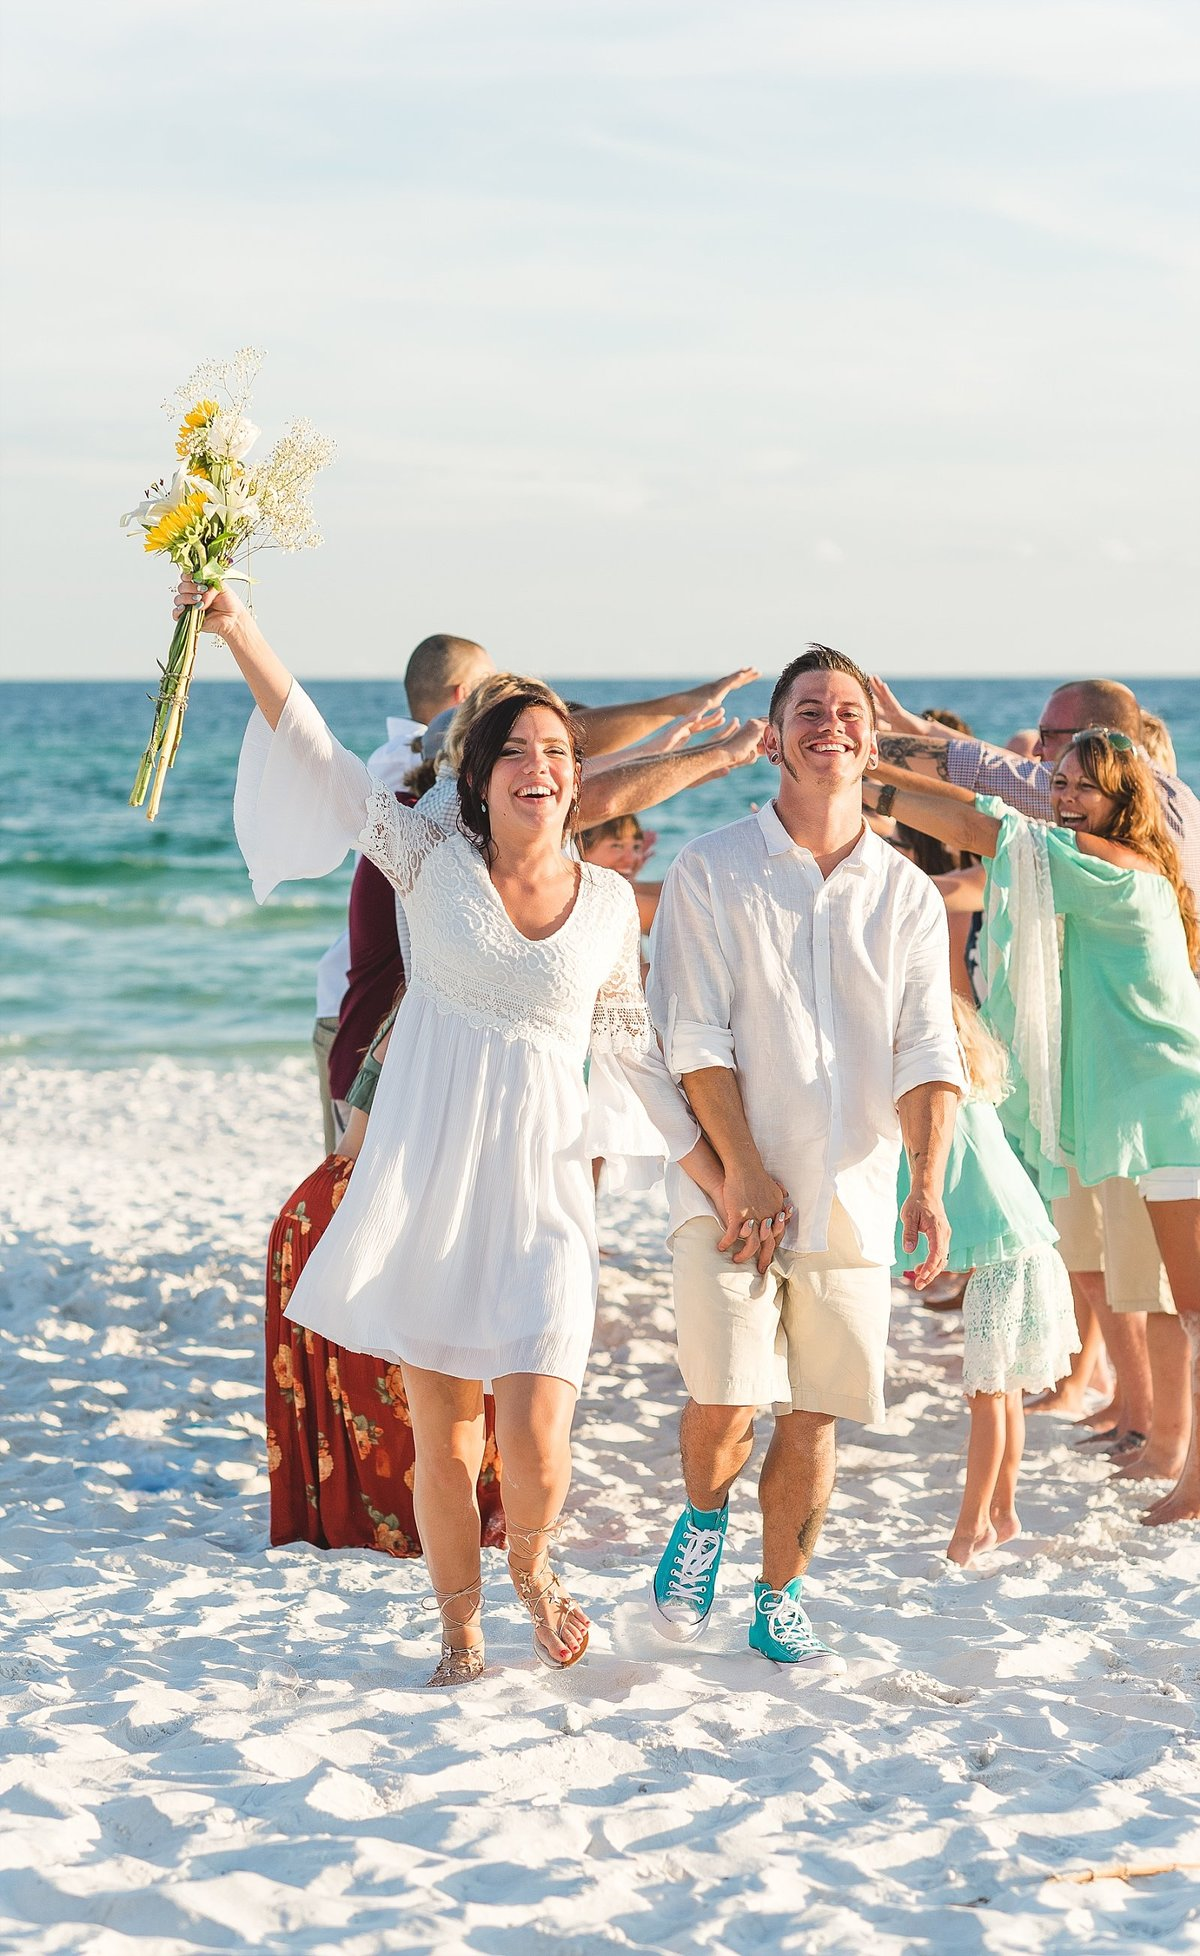 Texas wedding photographers, Destination wedding photographers, candid wedding photographers, San Antonio wedding photographers, panama city beach wedding photographers, destin wedding photographers_0144-1